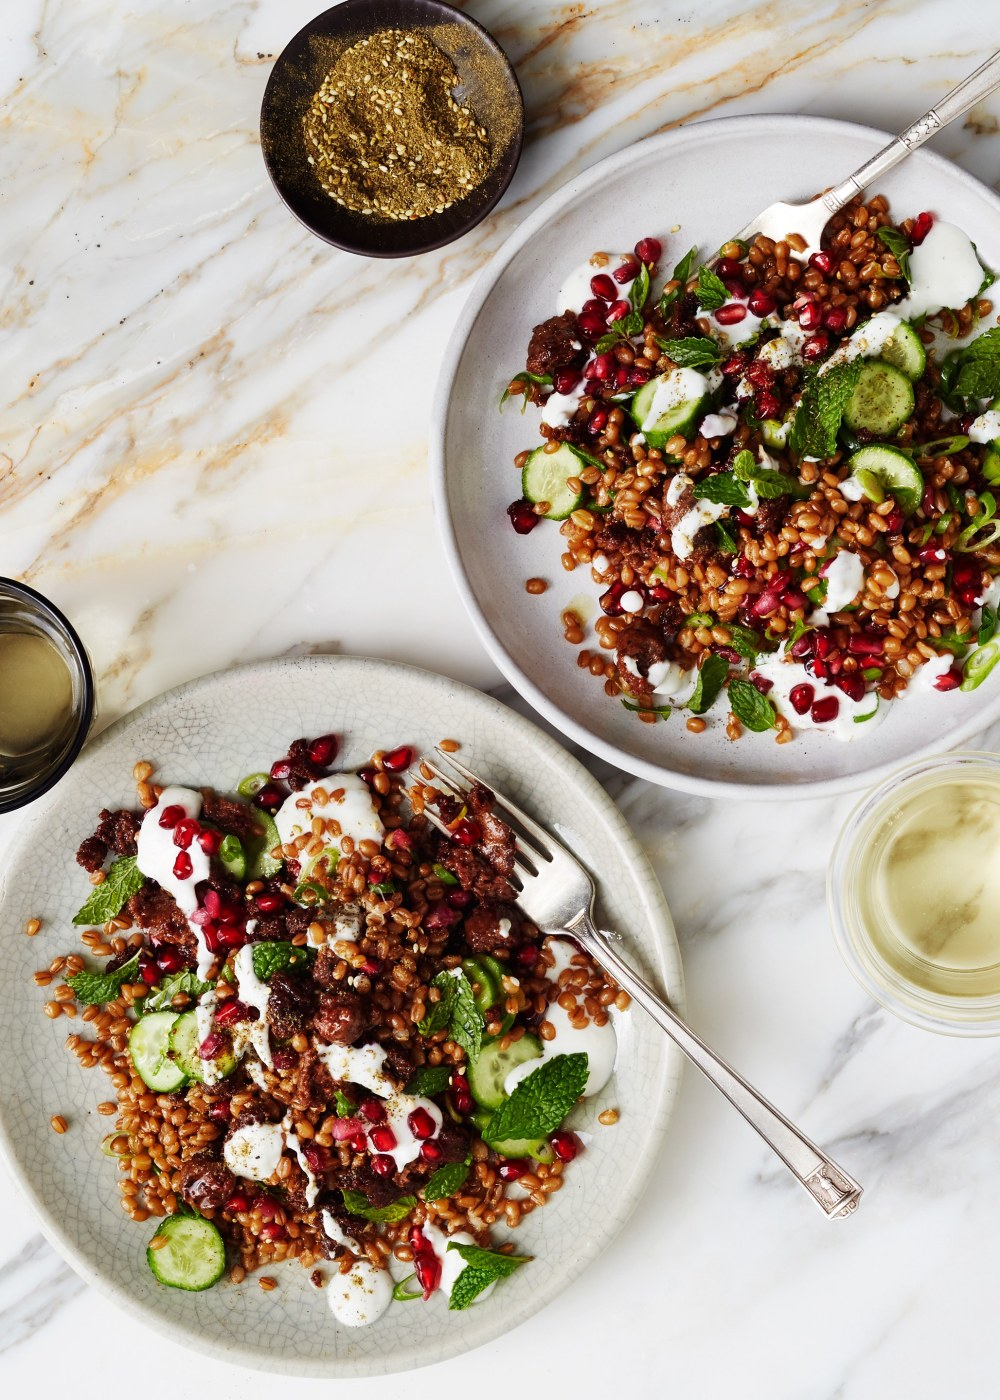 wheat-berry-bowl-with-merguez-and-pomegranate.jpg